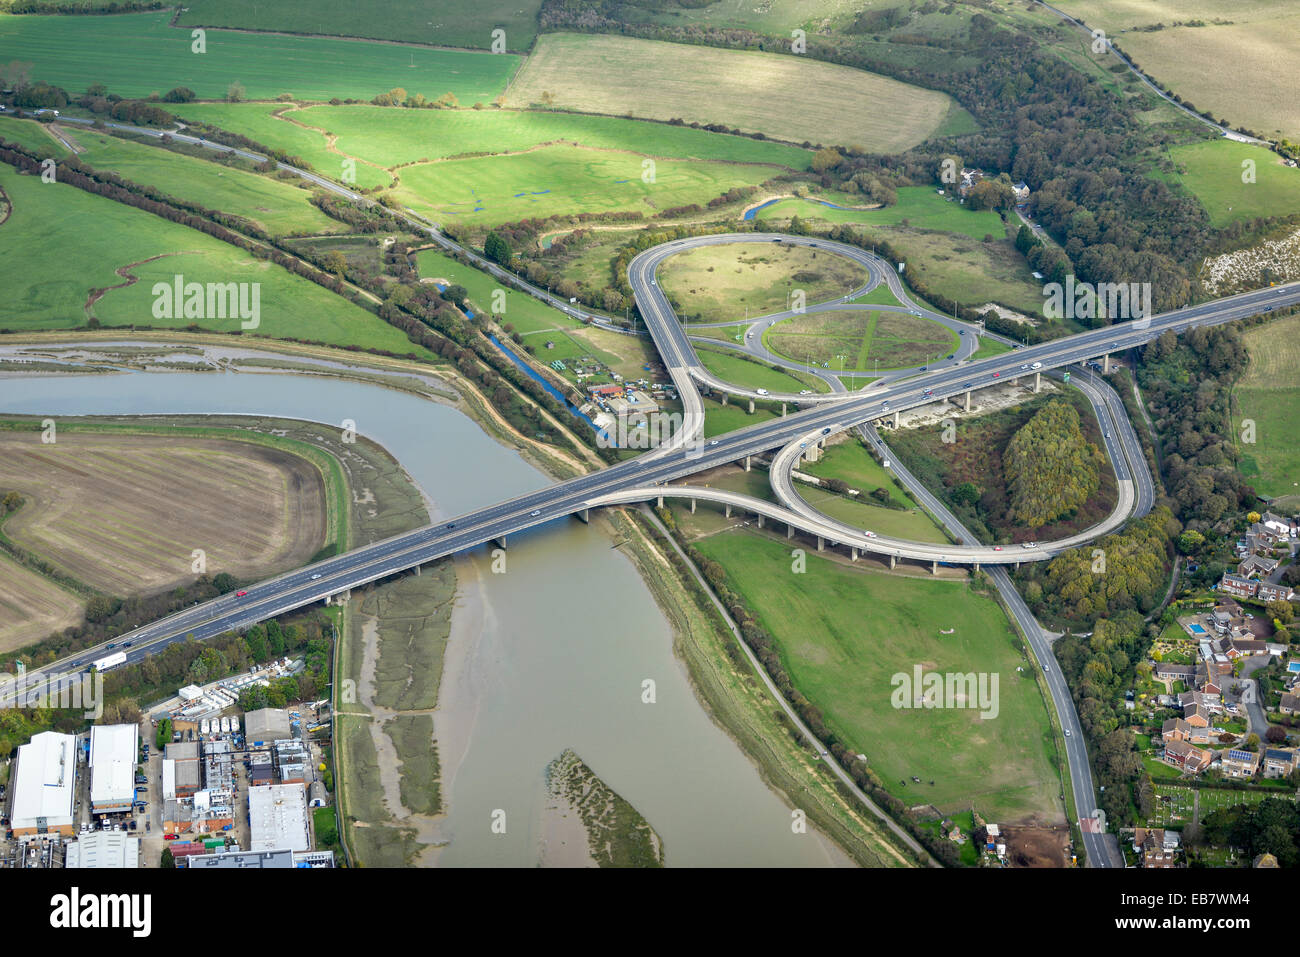 An aerial view of the a road junction on the A27 Shoreham Bypass. - Stock Image